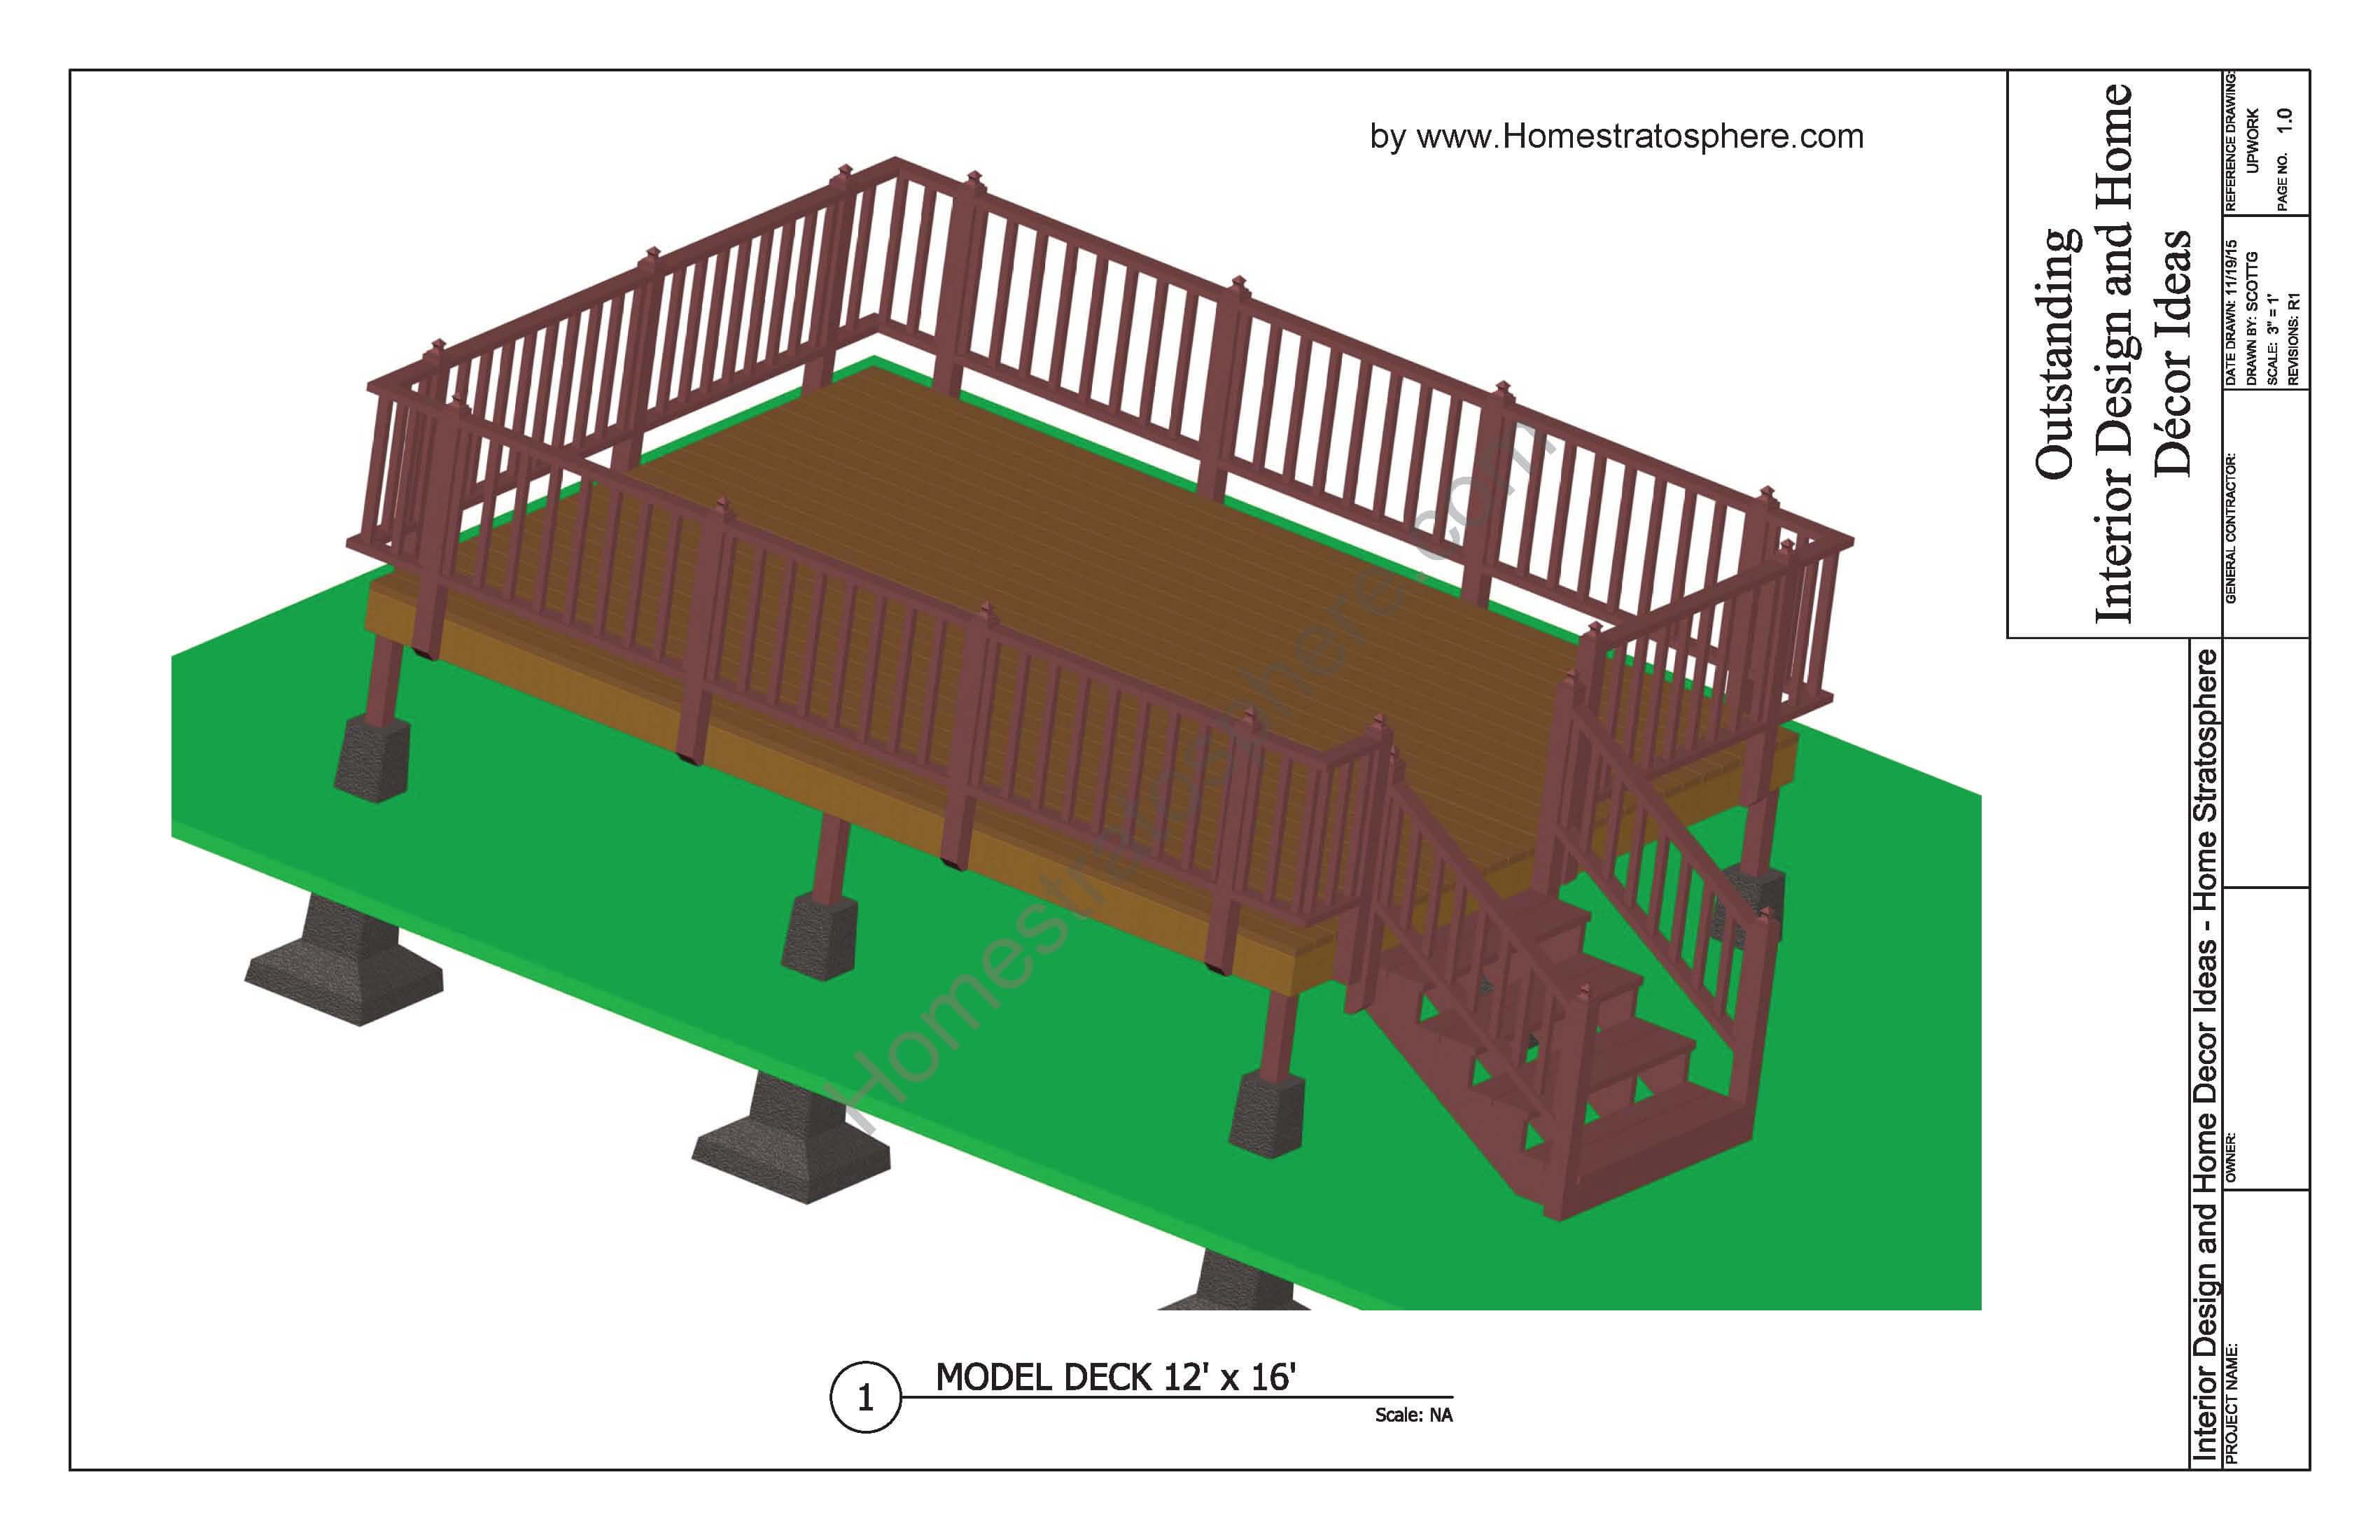 Stand Alone Deck Designs : Free deck plan blueprint with pdf document download